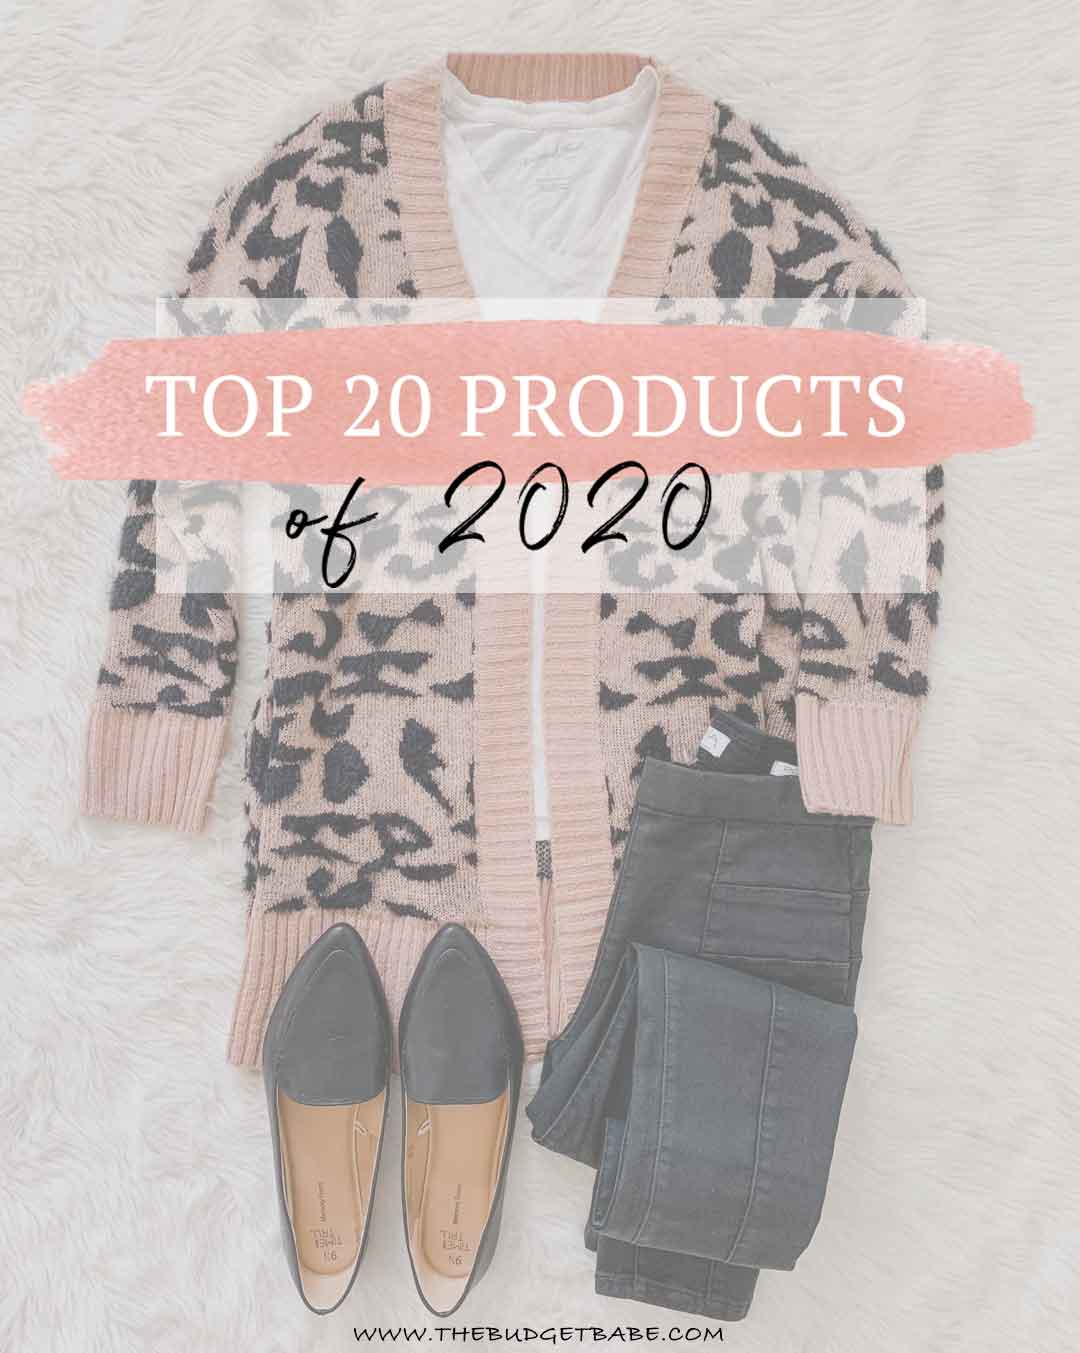 Top 20 Products of 2020